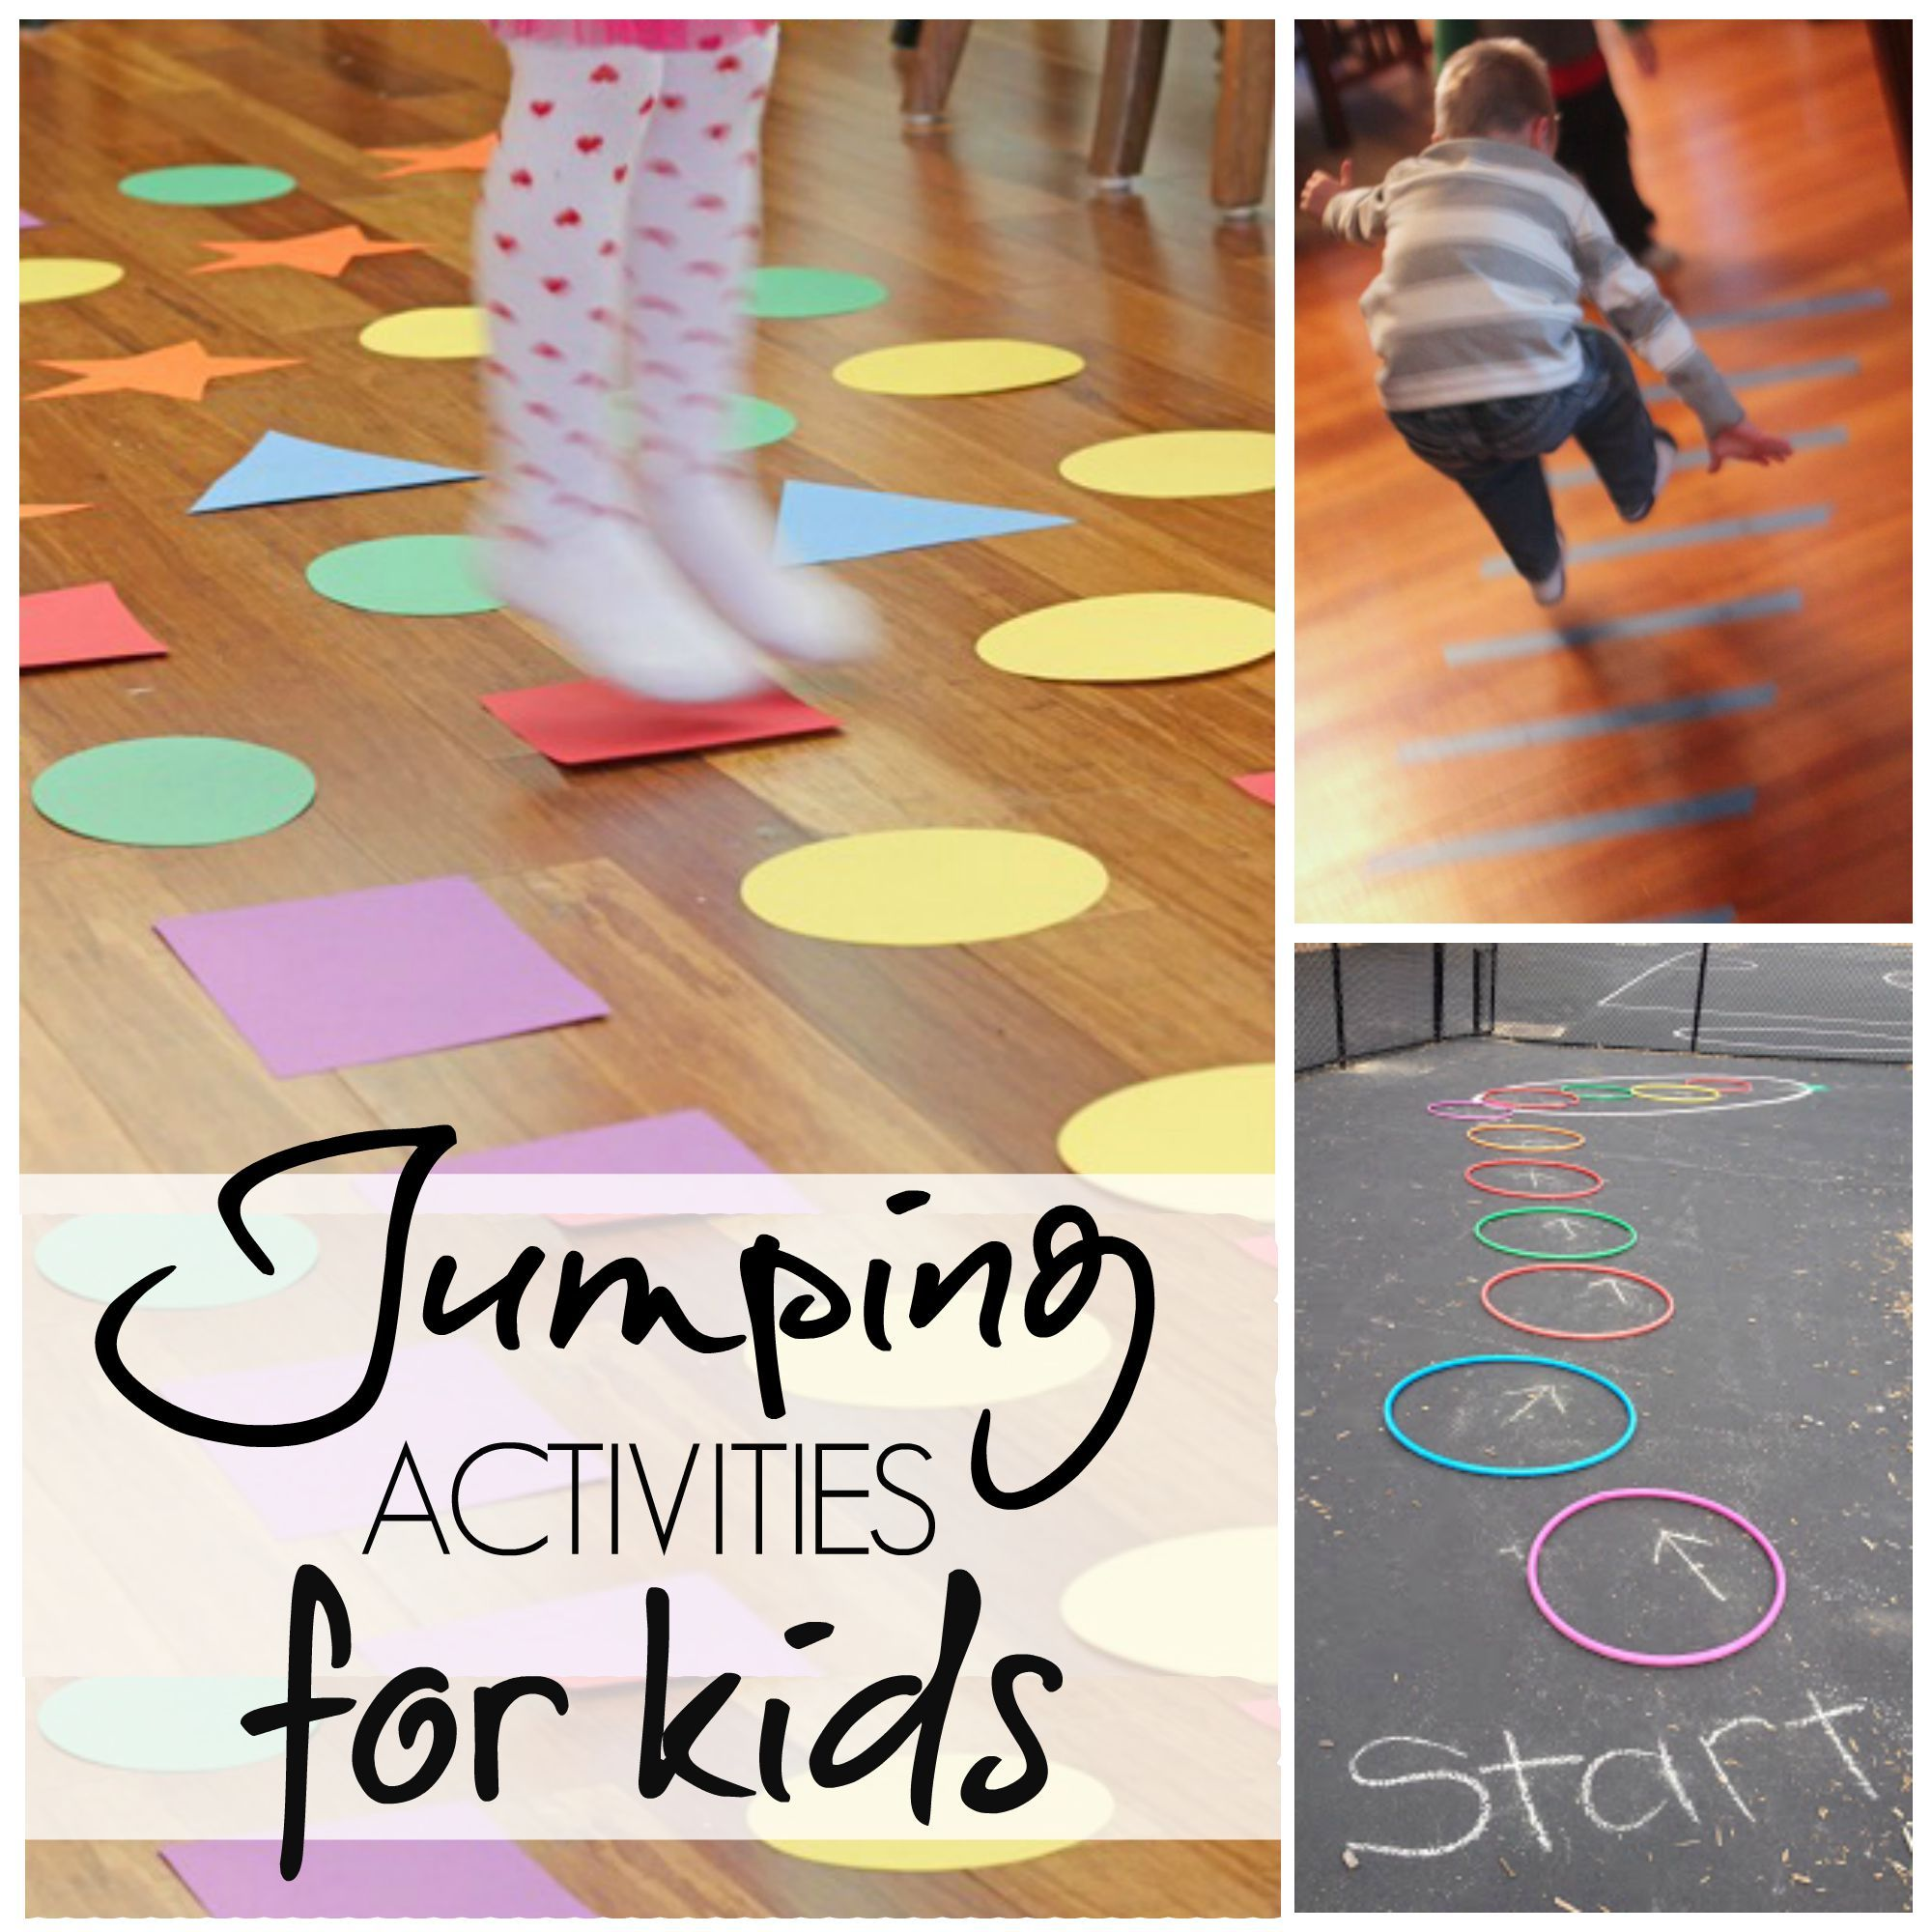 10 Jumping Activities For Kids With Images